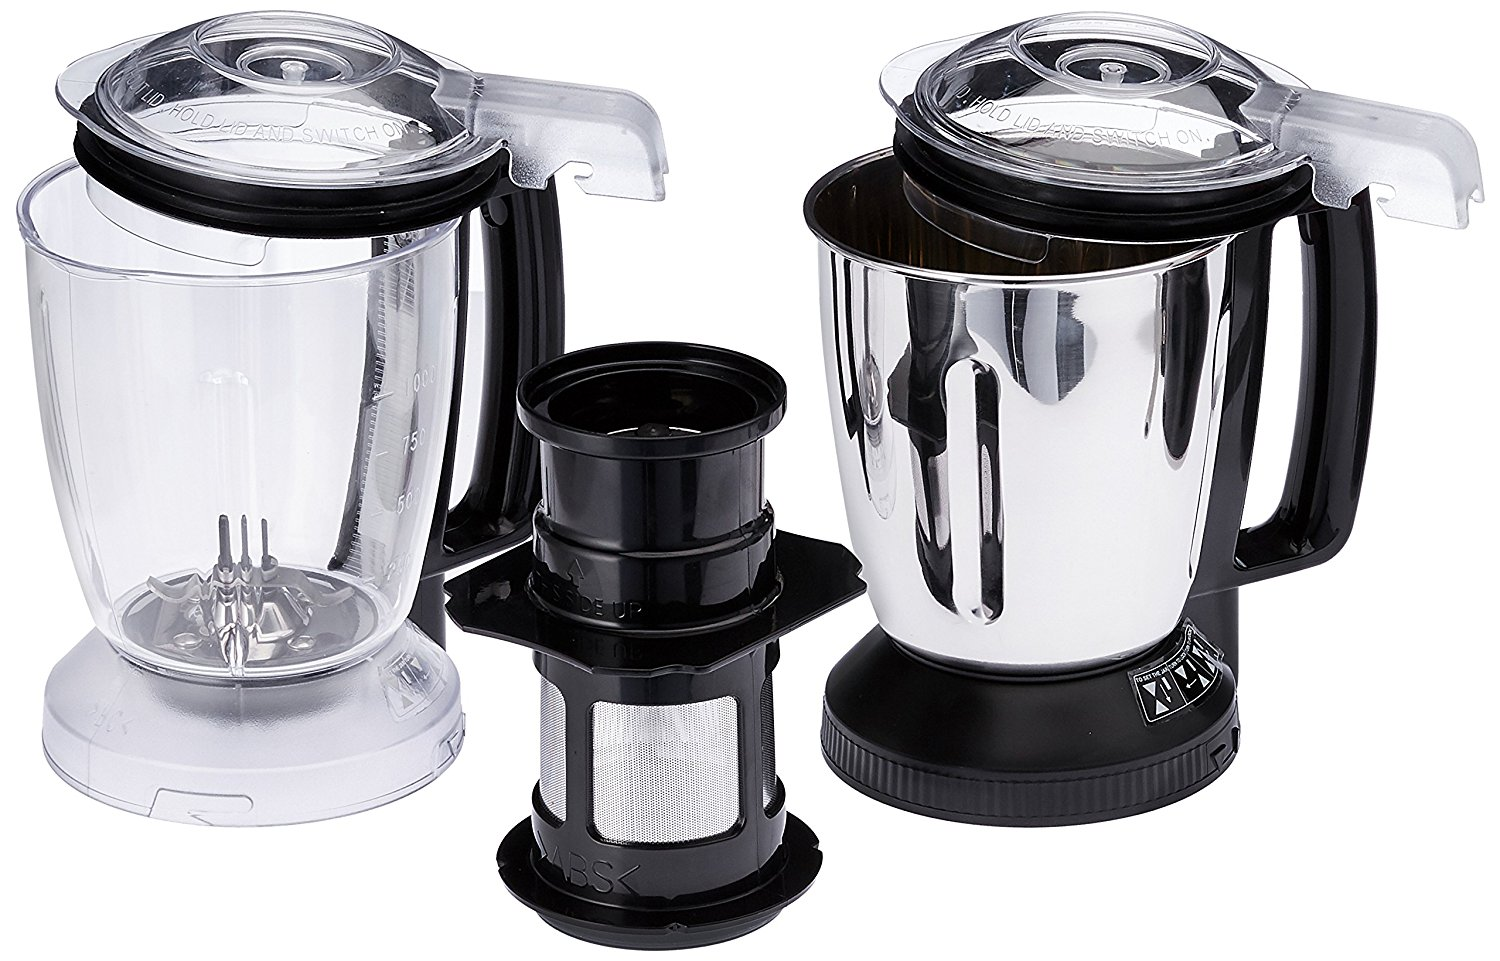 Panasonic MX-AC400 550-Watt 4-Jar Super Mixer Grinder Image